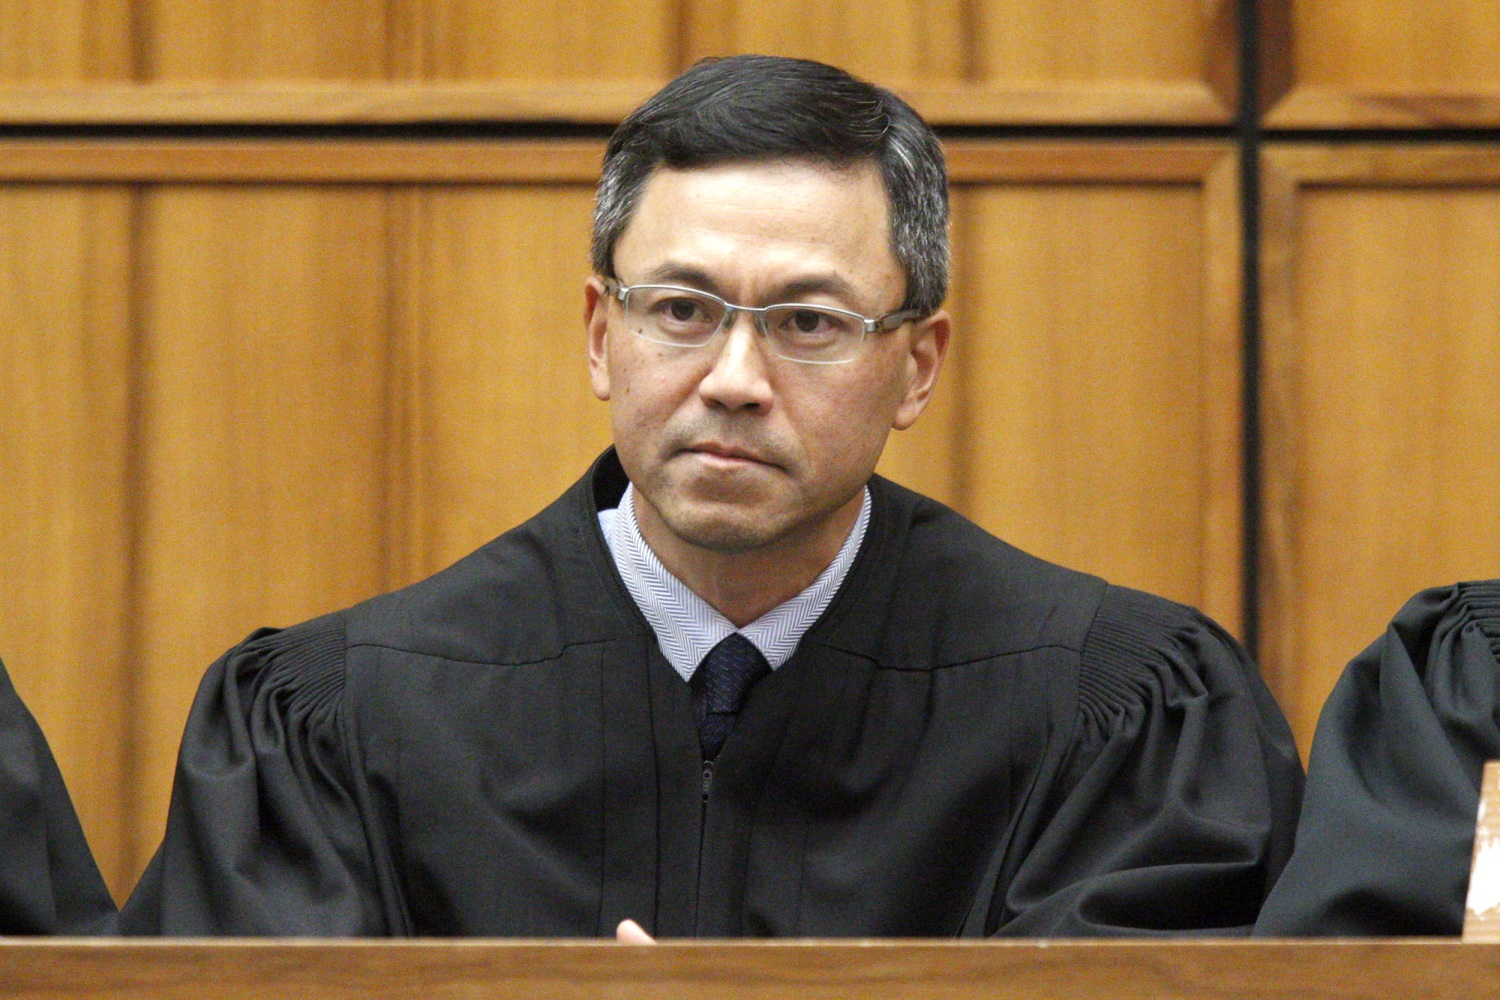 Trump's latest travel ban blocked by Hawaii judge